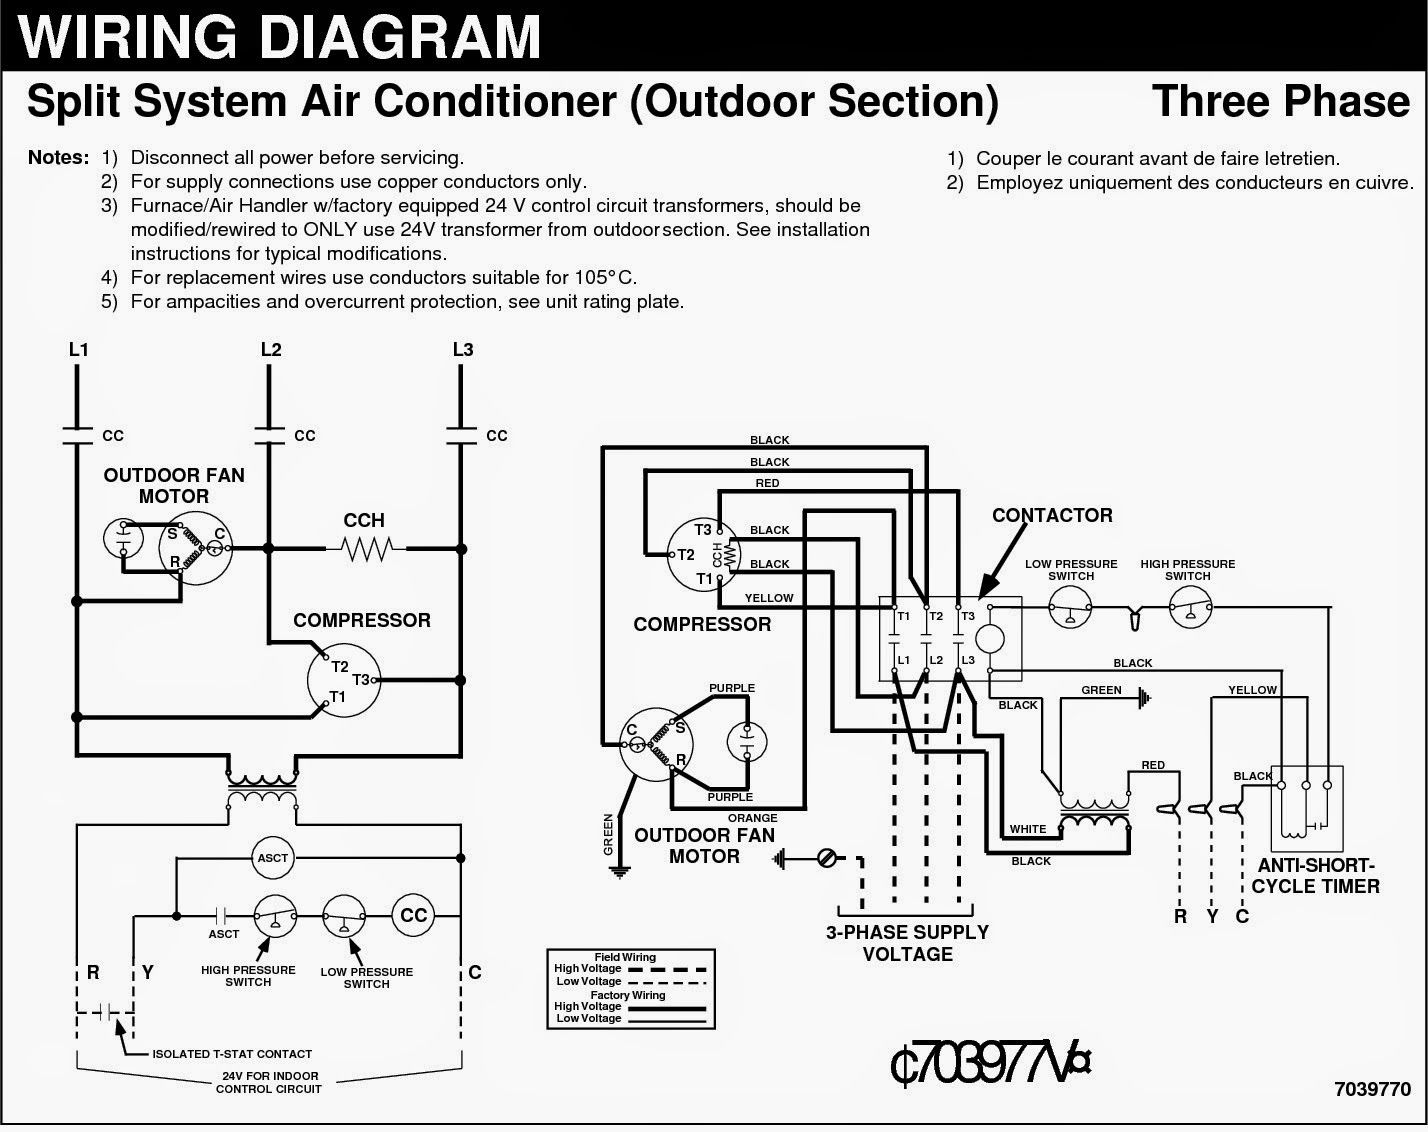 3 phase split ac wiring diagram agile development image result for of 380 volts 10 tons